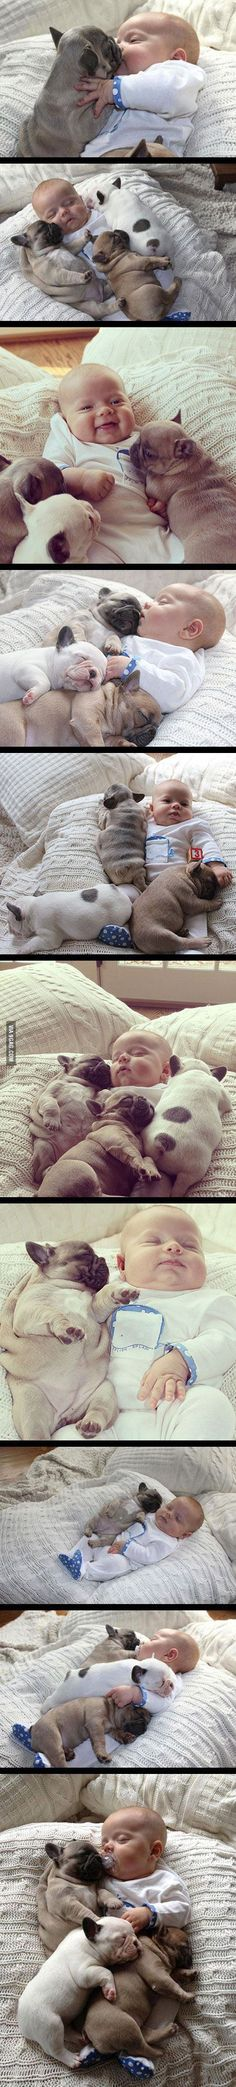 Babies and Puppies - my two favorite things :)